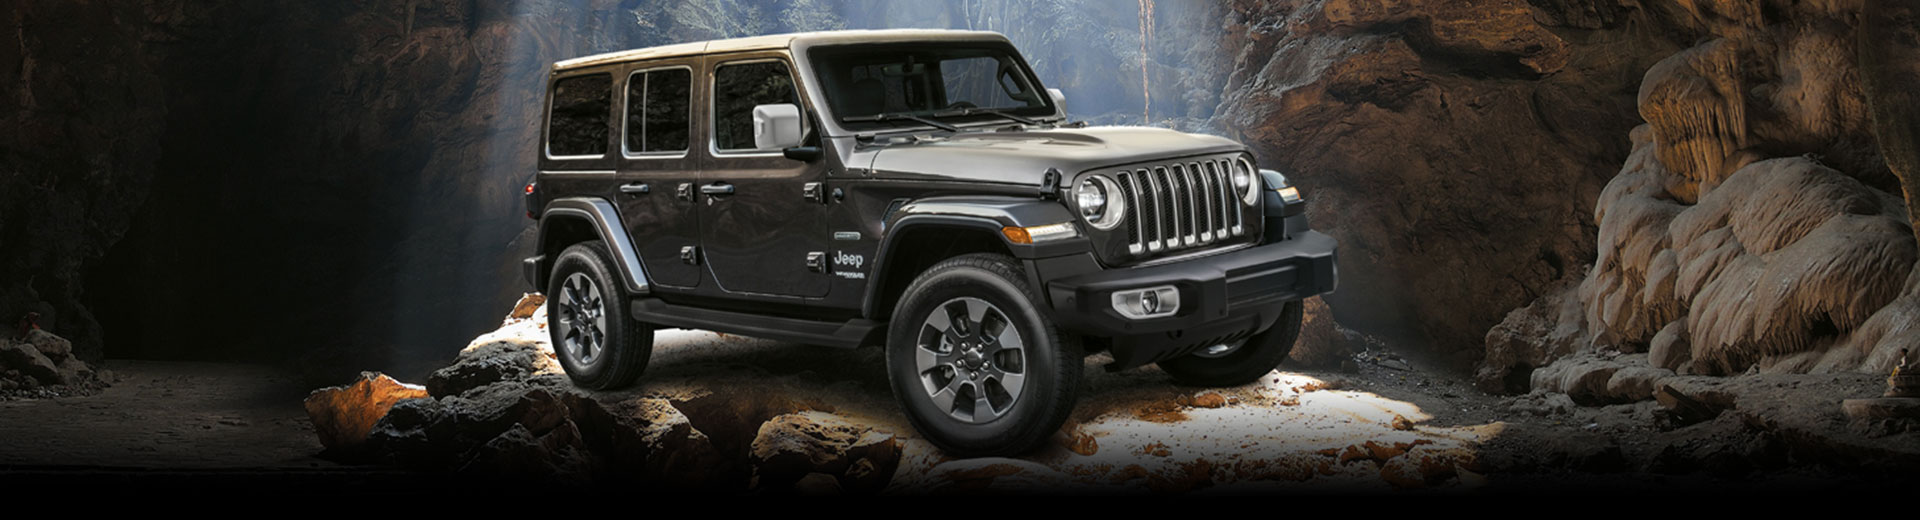 Jeep Wrangler Unlimited Banner